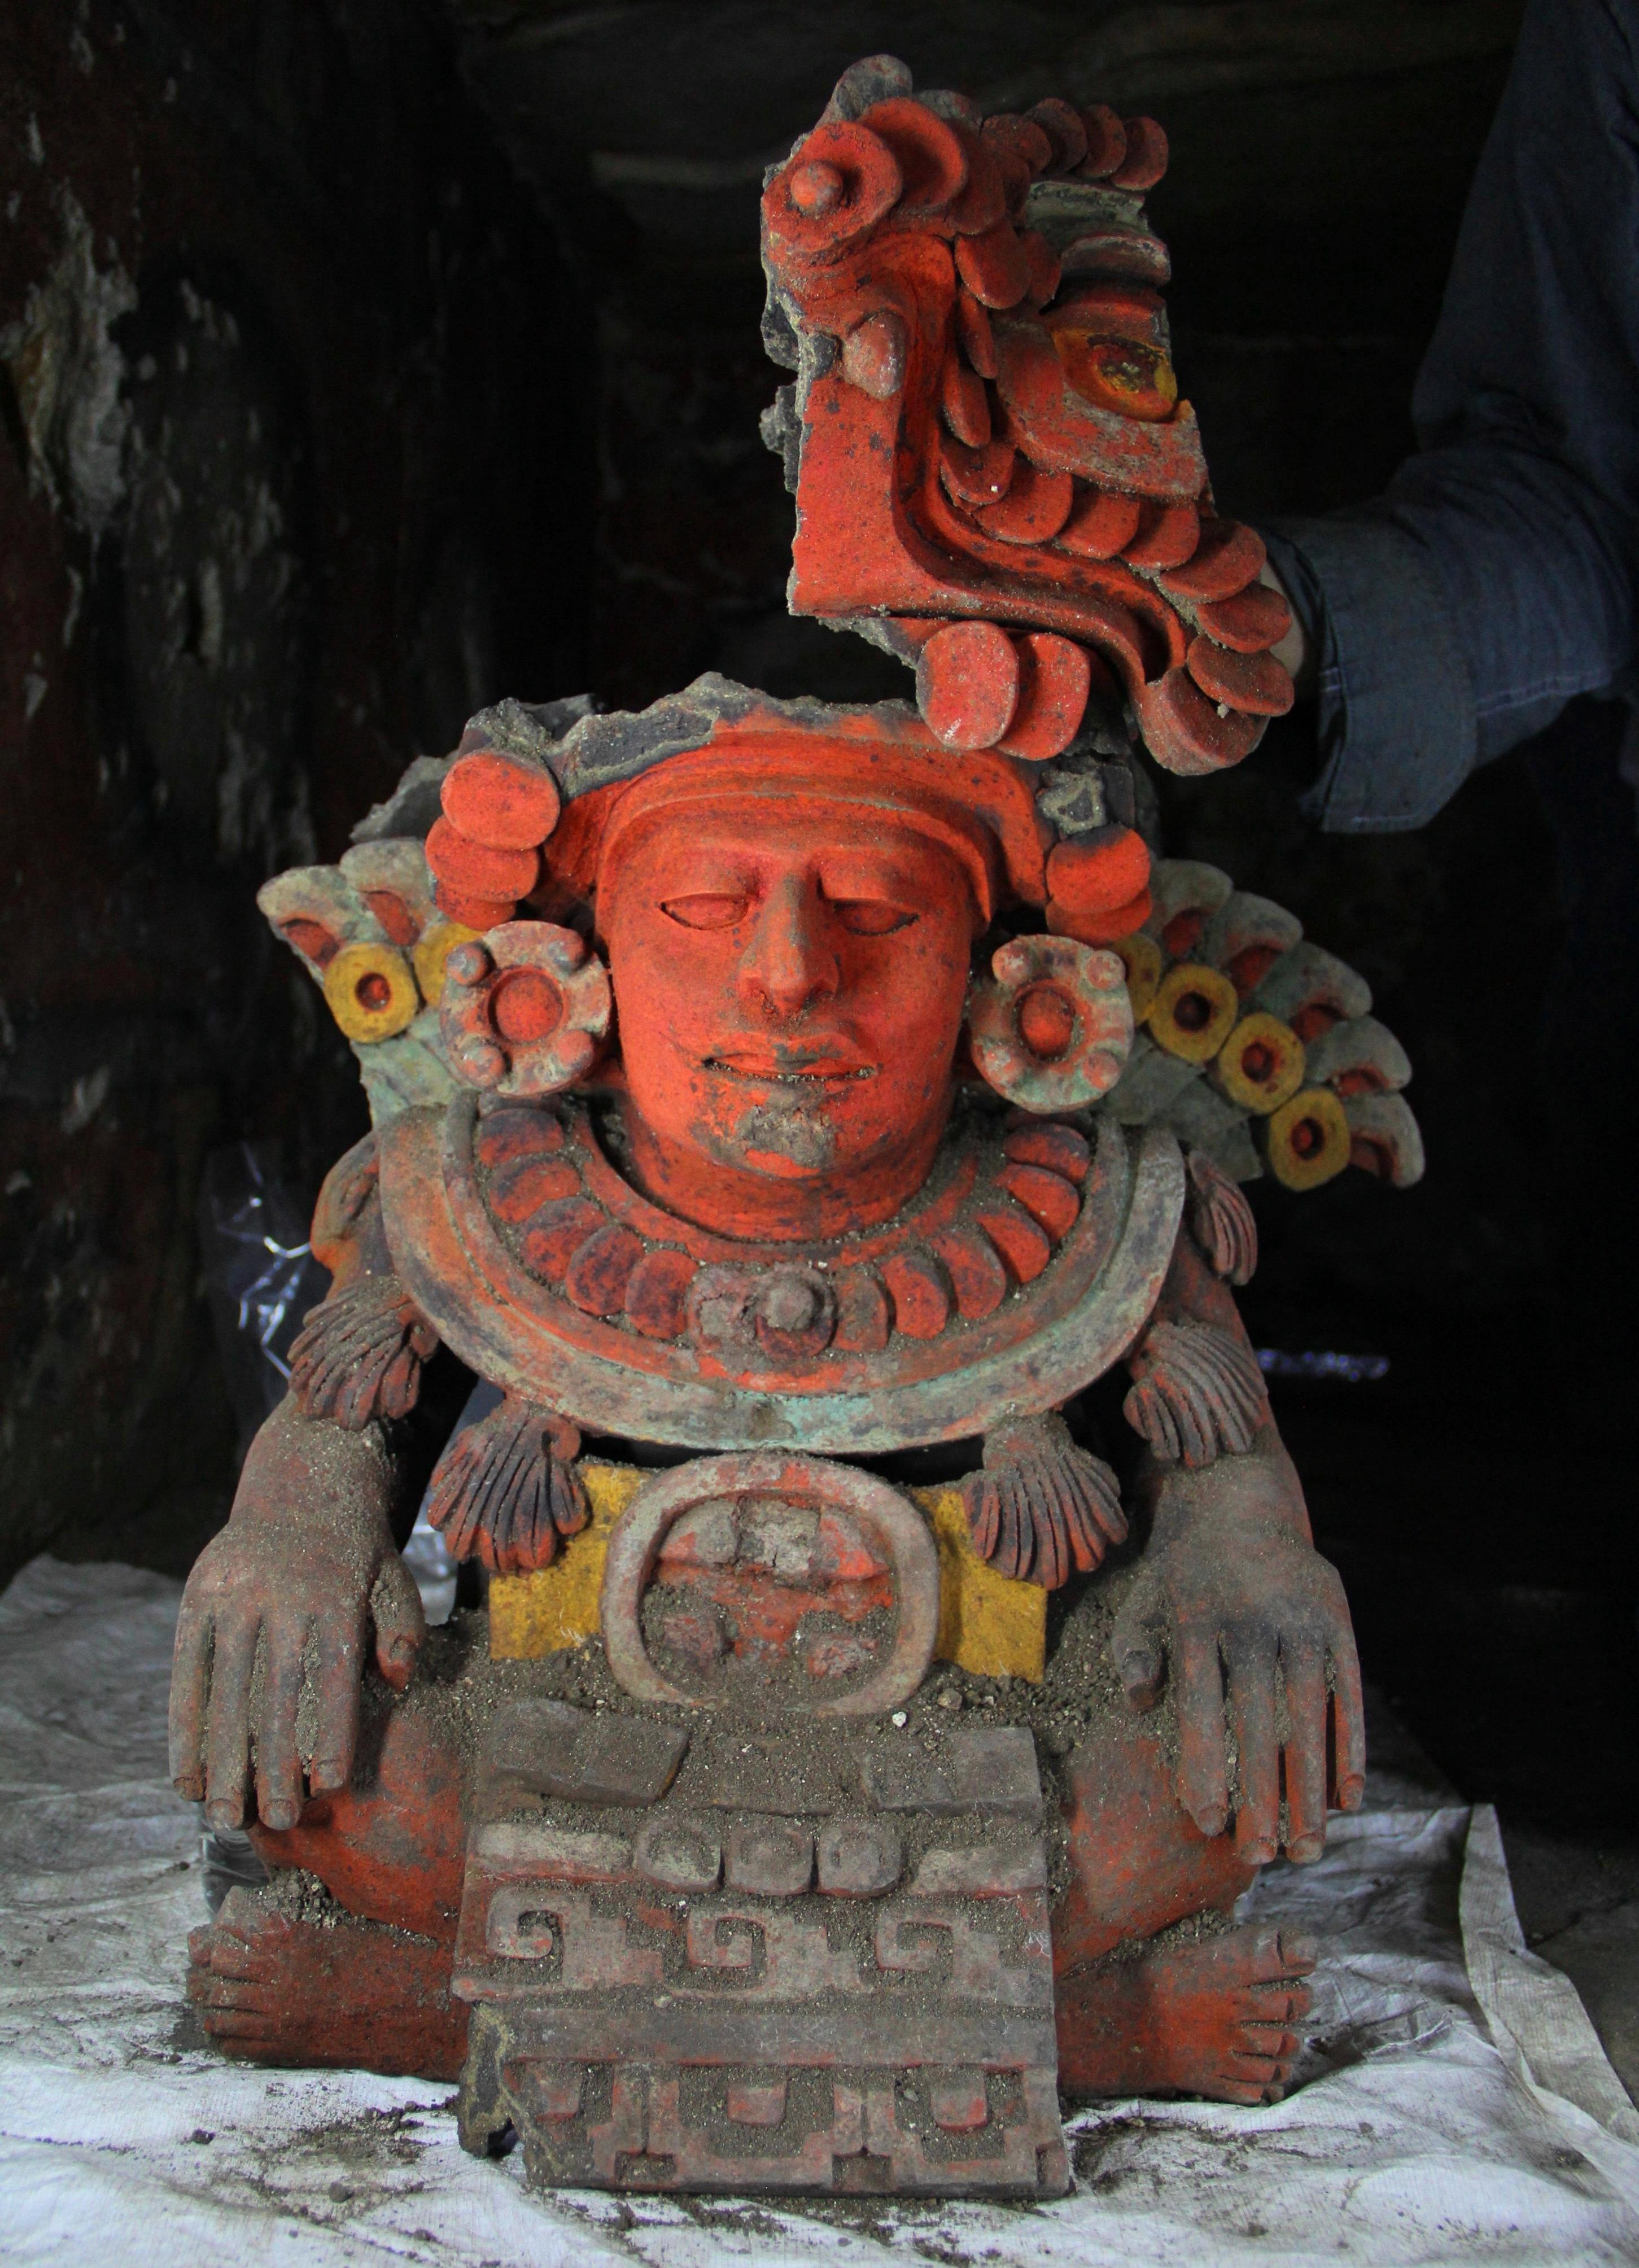 Atompa effigy potZapotec Tombs